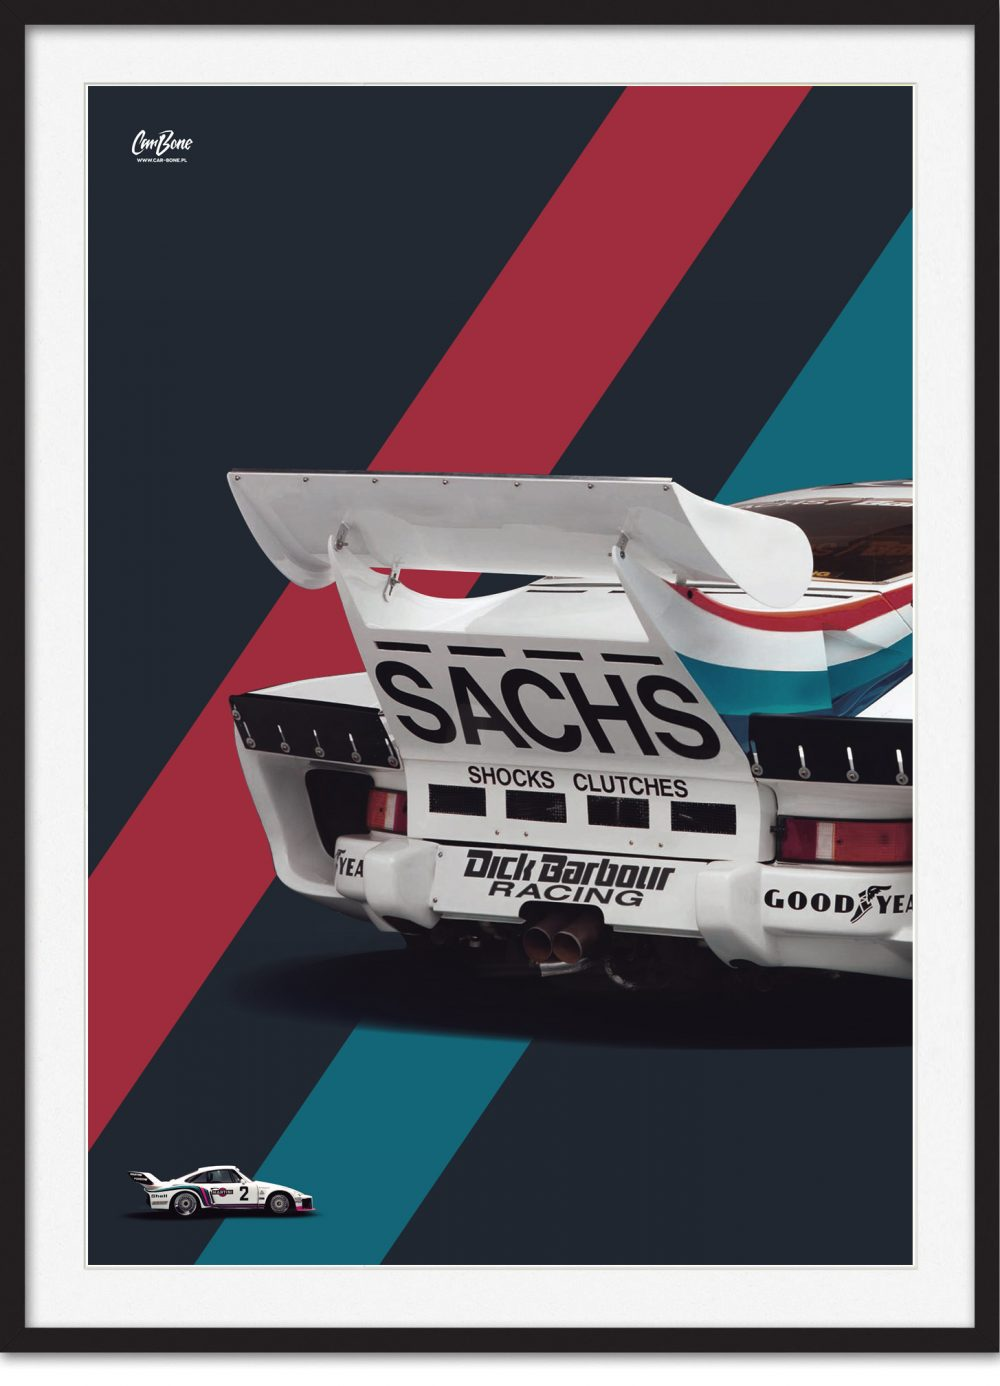 Car Bone Porsche Posters Are Now Available In The Shop